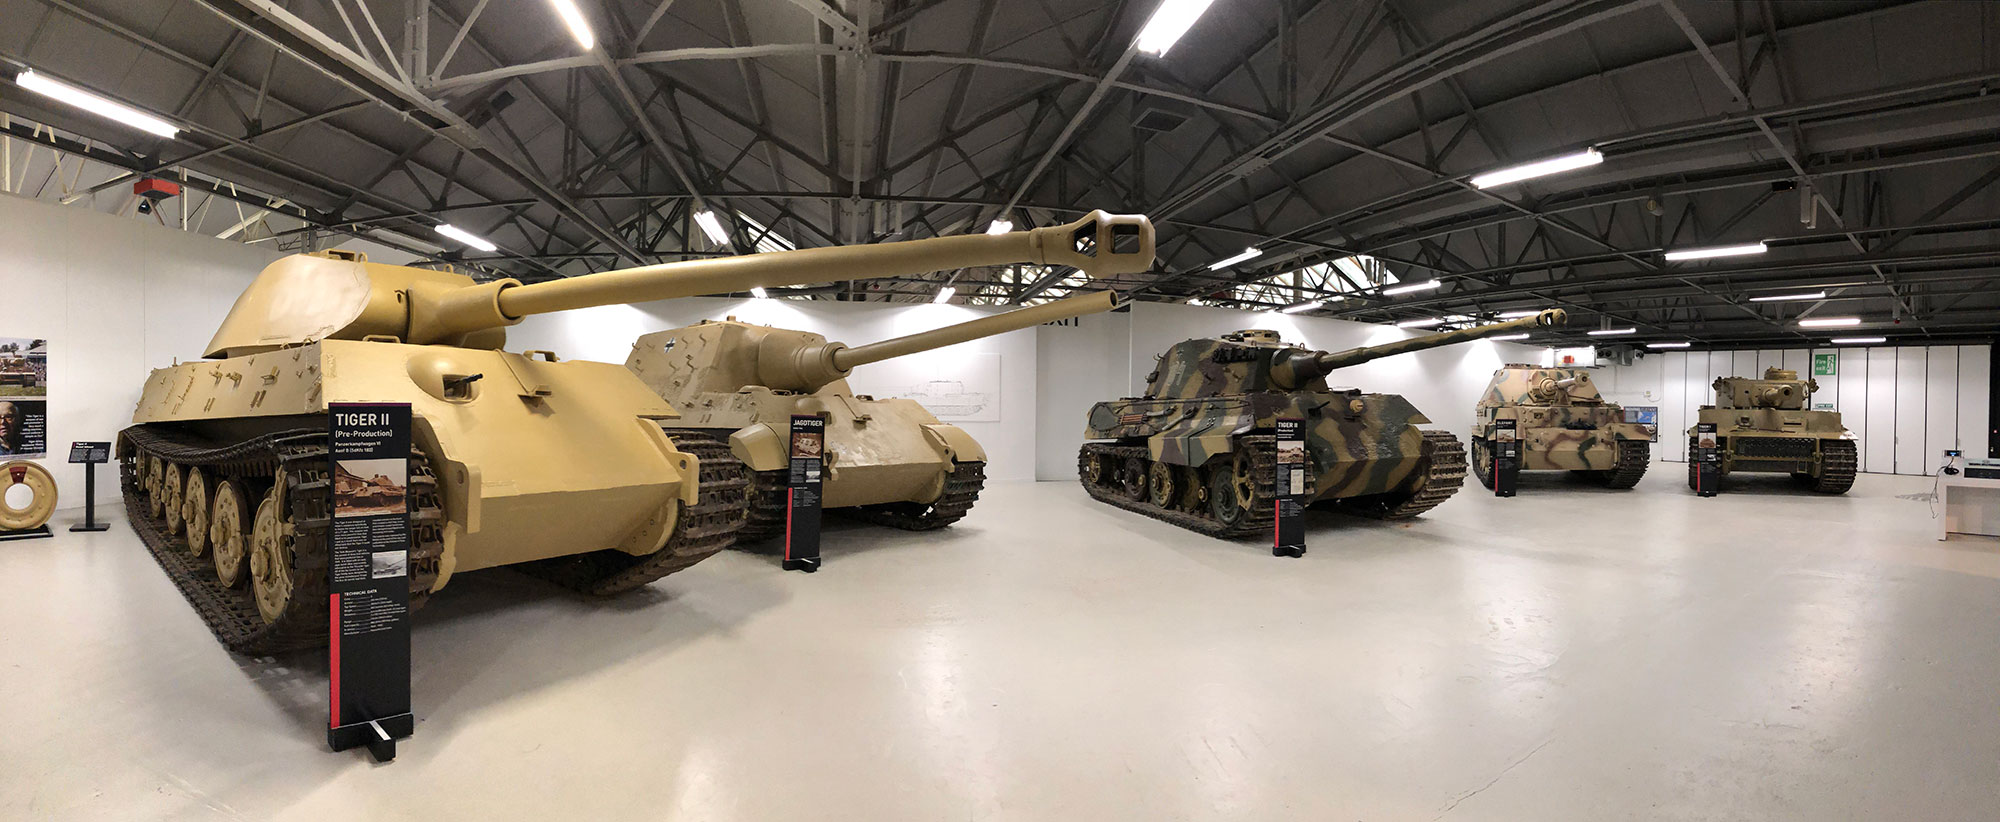 Tiger_tank_exhibit_panorama-converted